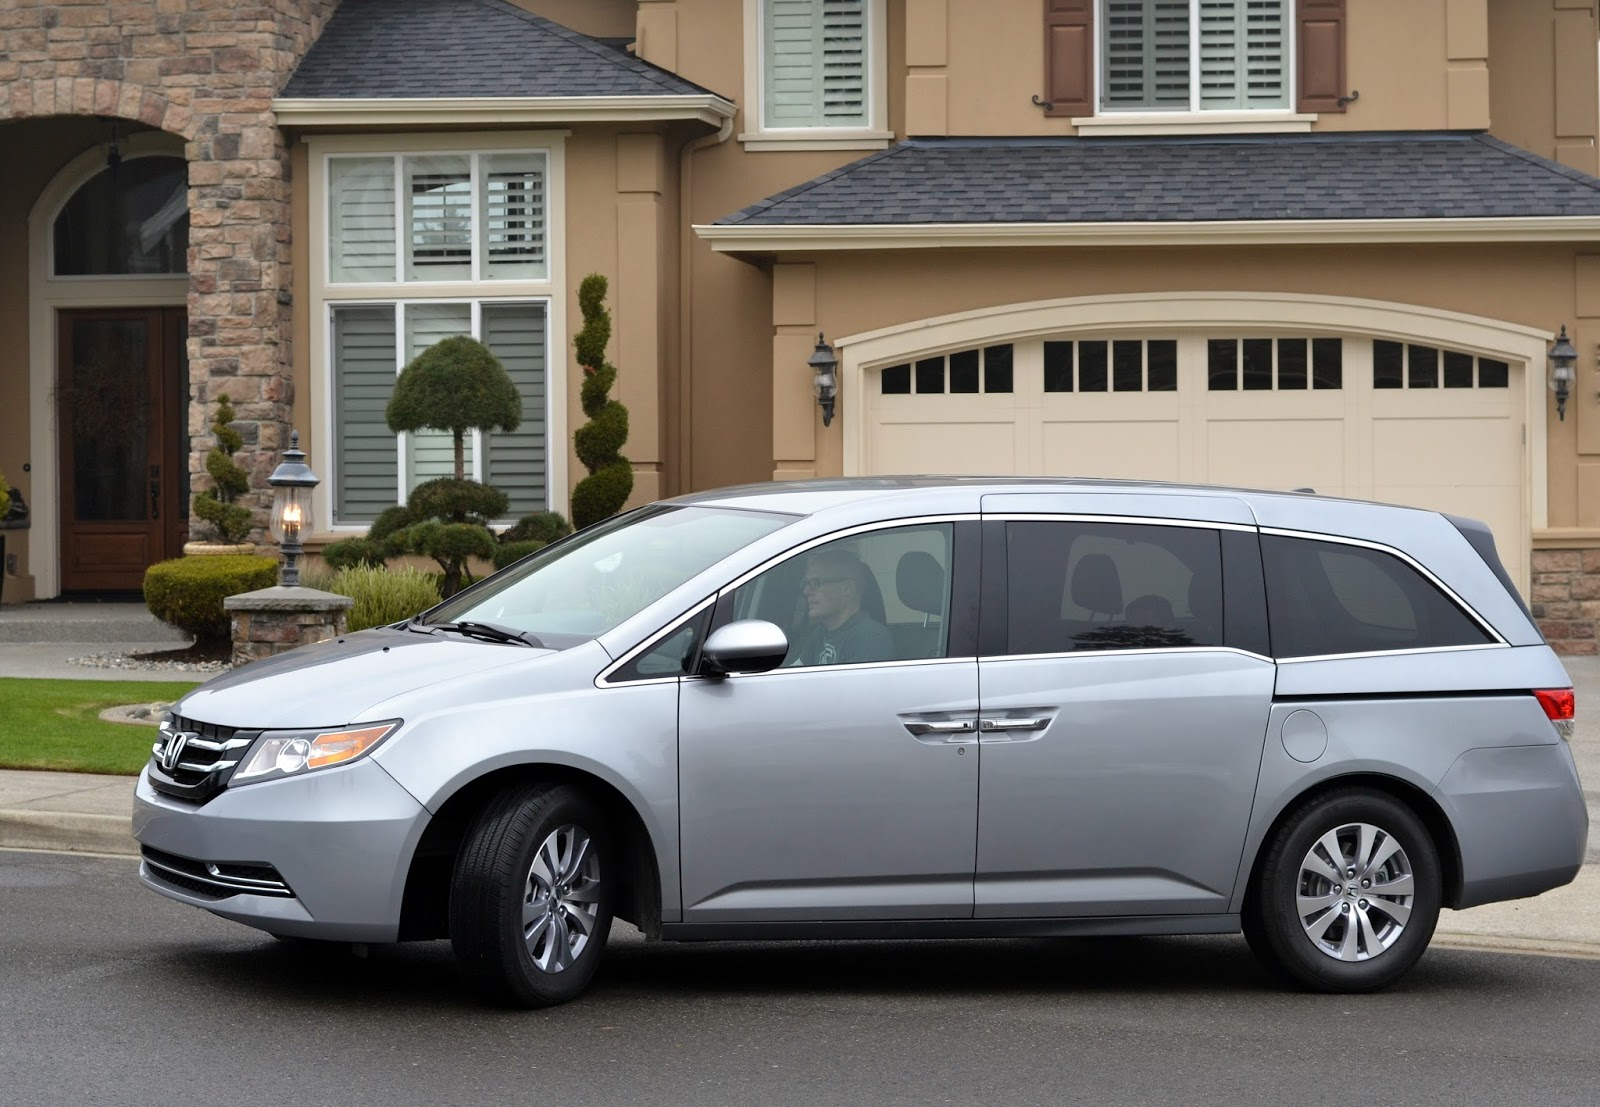 After reading some reviews done by actual professionals comparing the overall mechanical quality of the leading vans most showing the odyssey as the clear